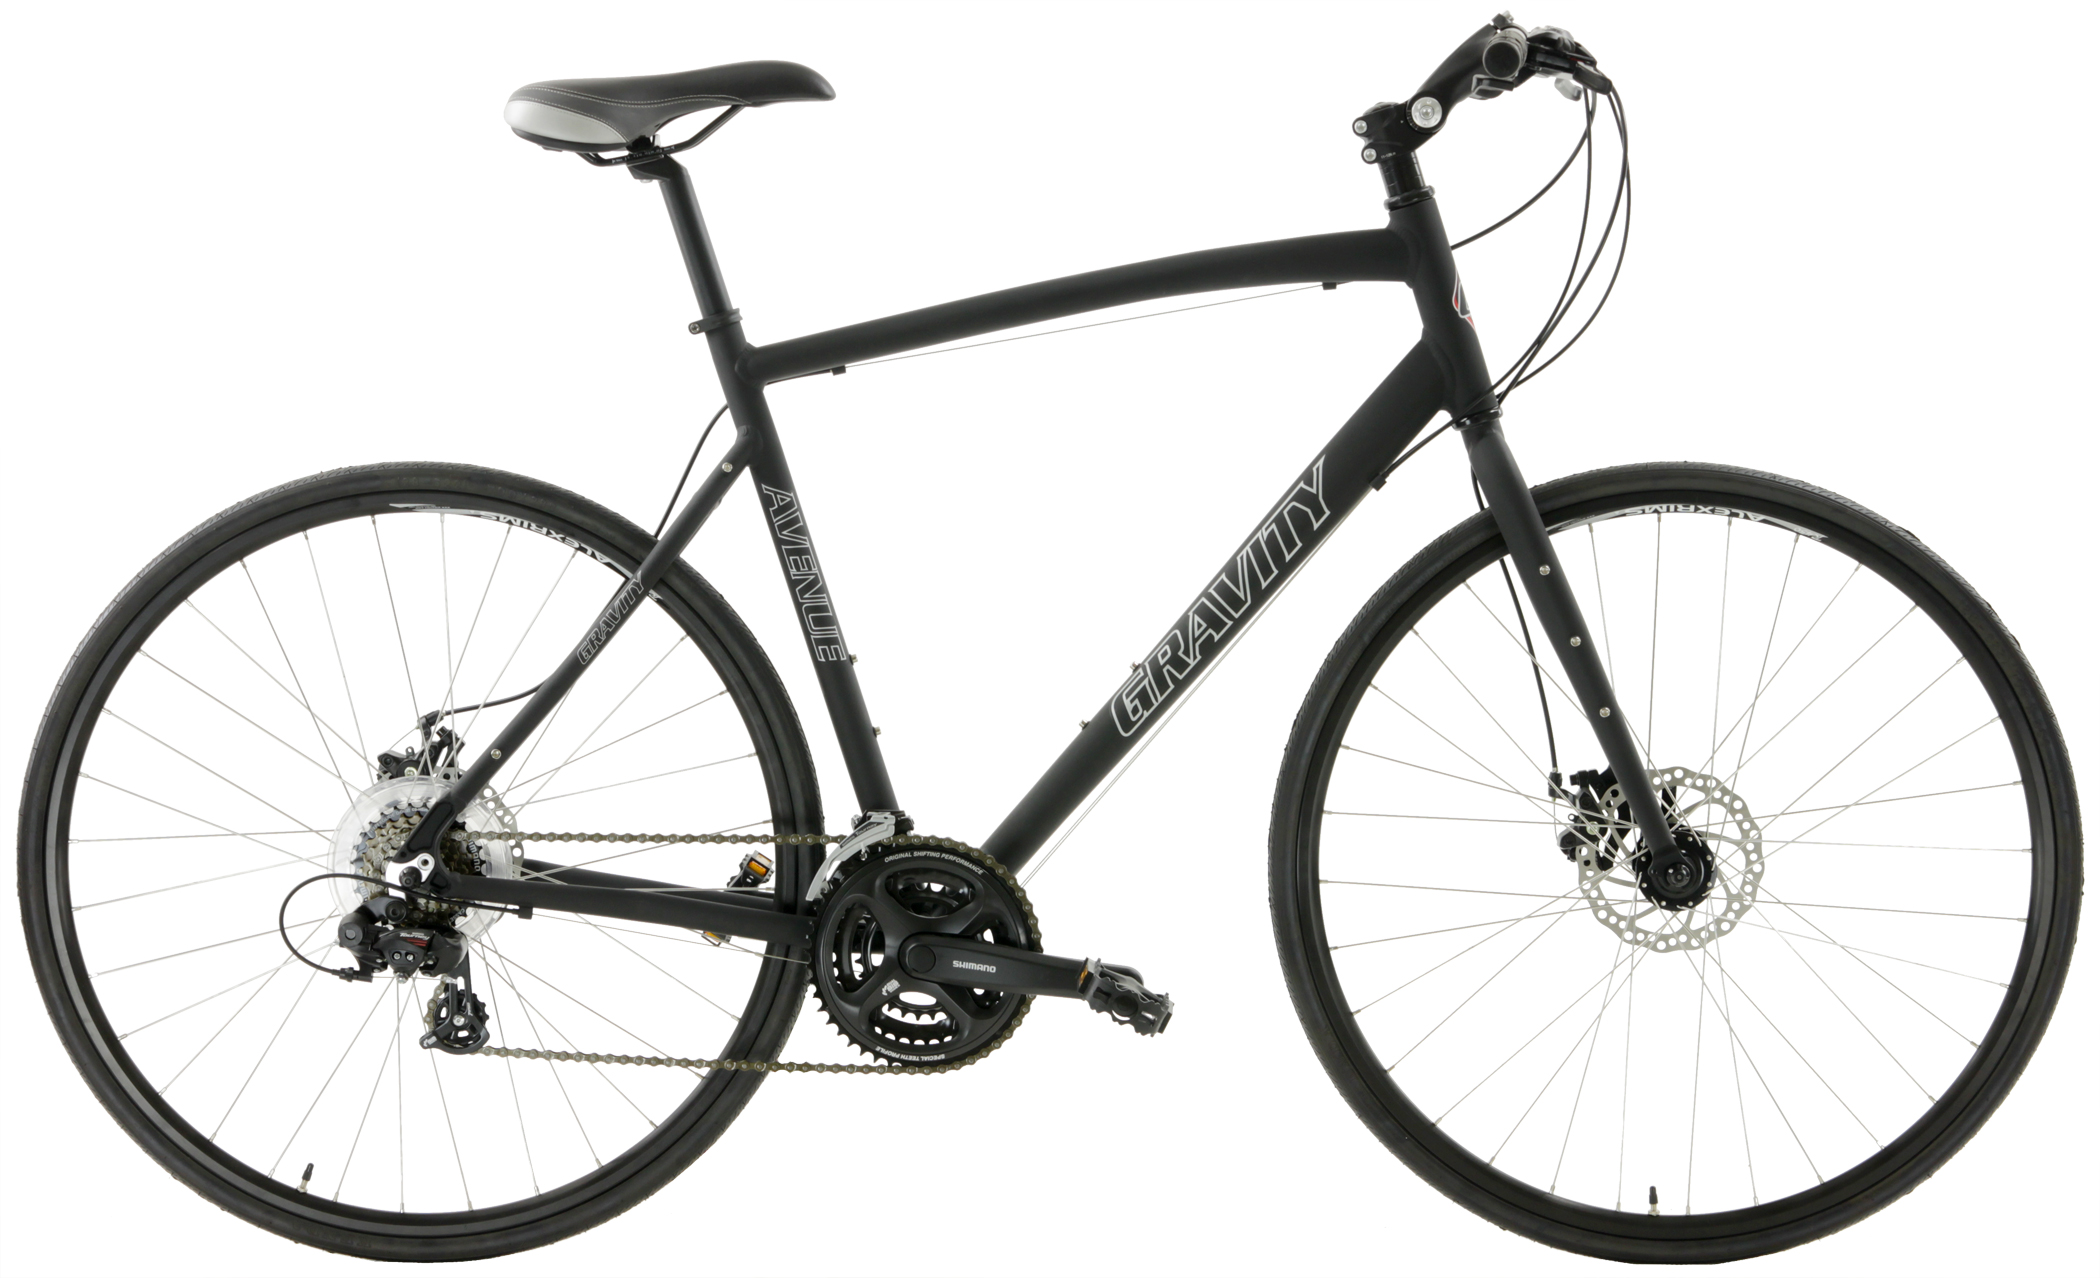 AVENUE FXD - SHIMANO 21sp FLAT-BAR  w/ DISC BRAKES